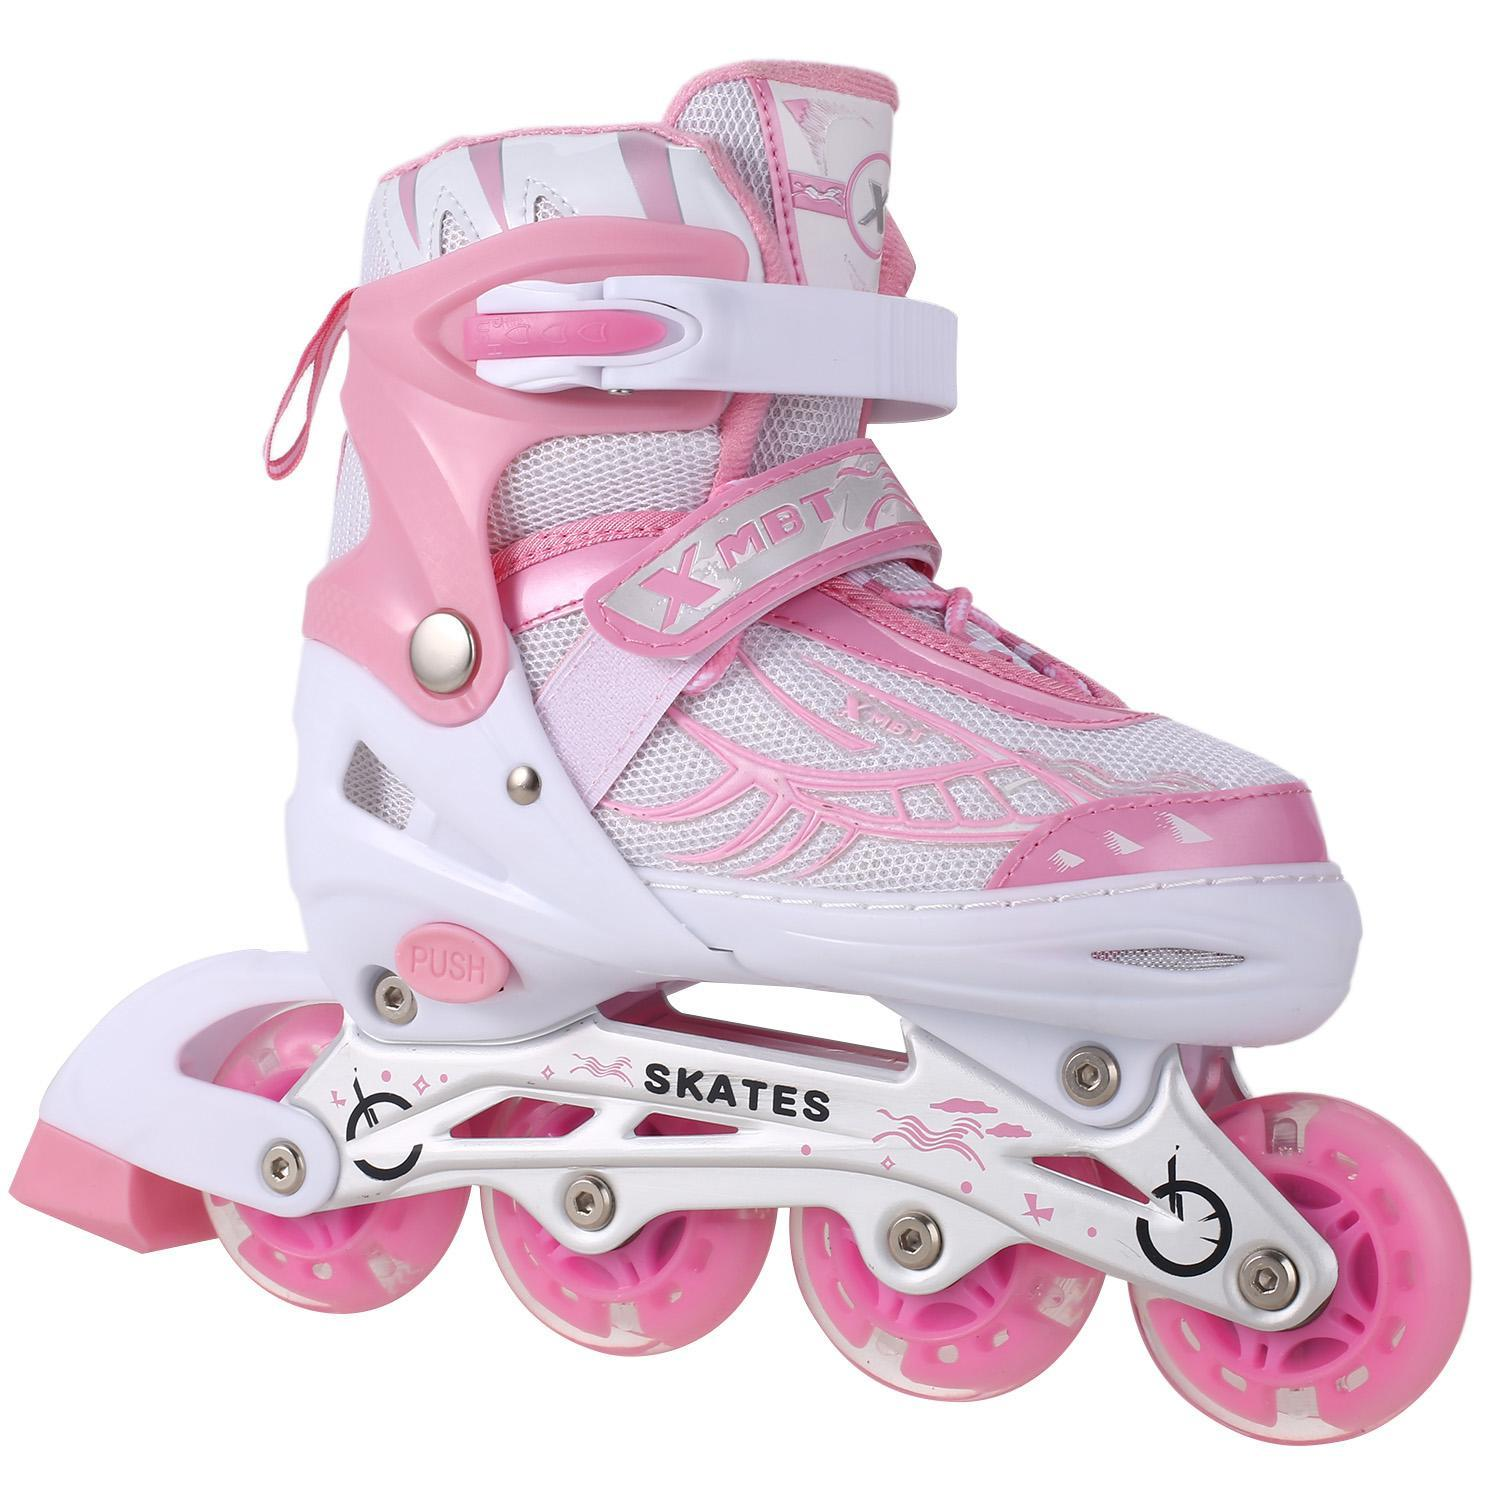 Kid's Ciro Adjustable Kids Inline Skates with Light up Wheels, Stylish Rollerblades for Beginners boys and girls